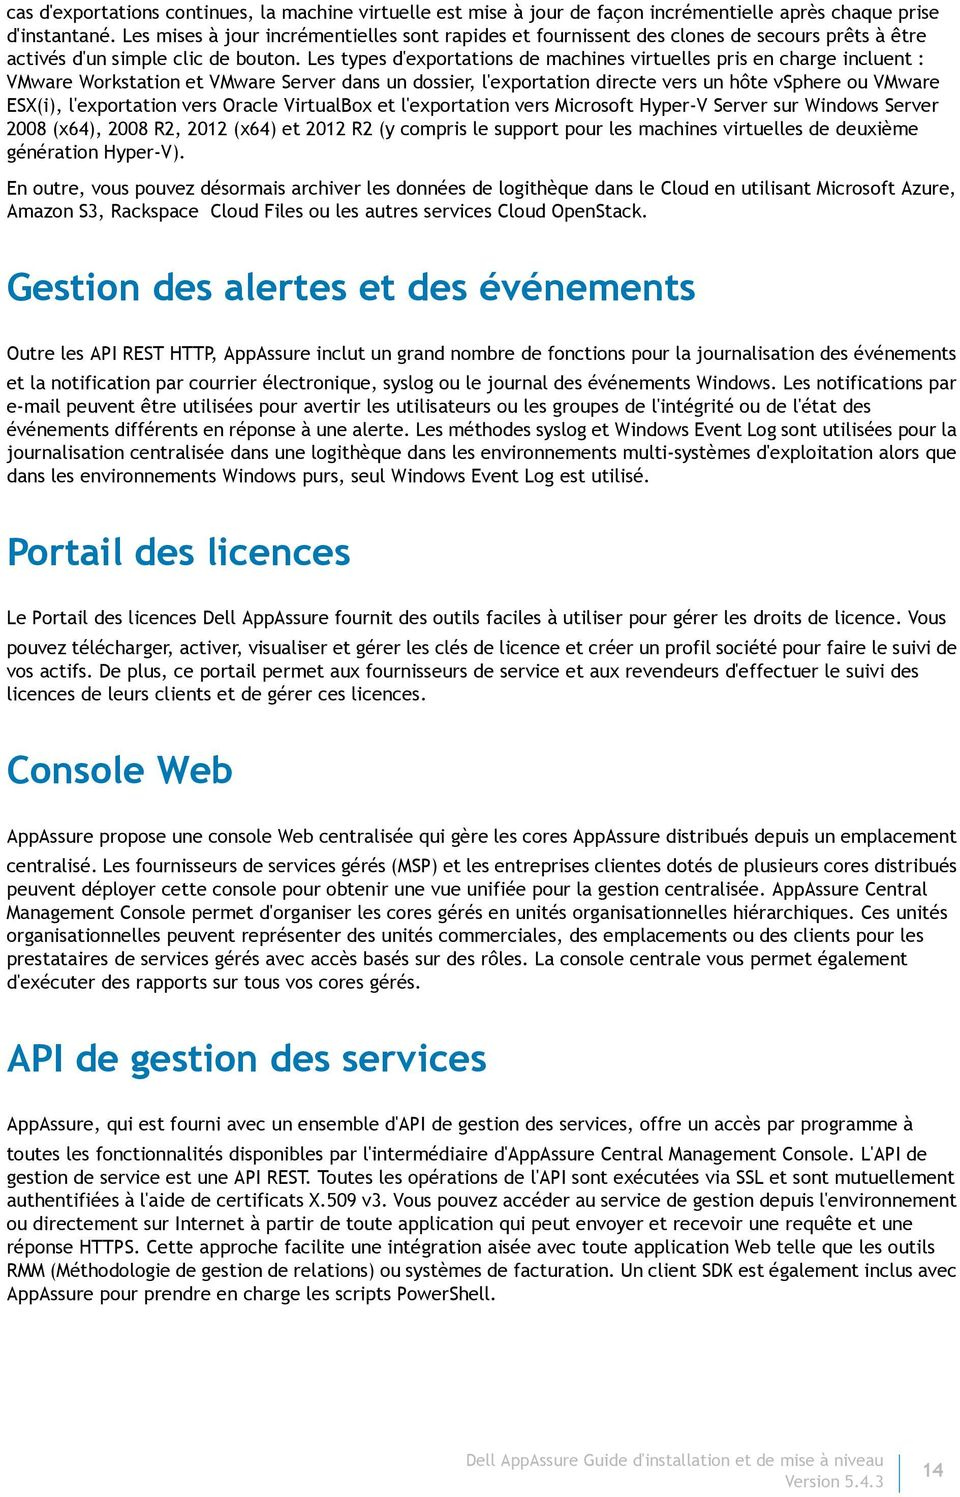 Les types d'exportations de machines virtuelles pris en charge incluent : VMware Workstation et VMware Server dans un dossier, l'exportation directe vers un hôte vsphere ou VMware ESX(i),